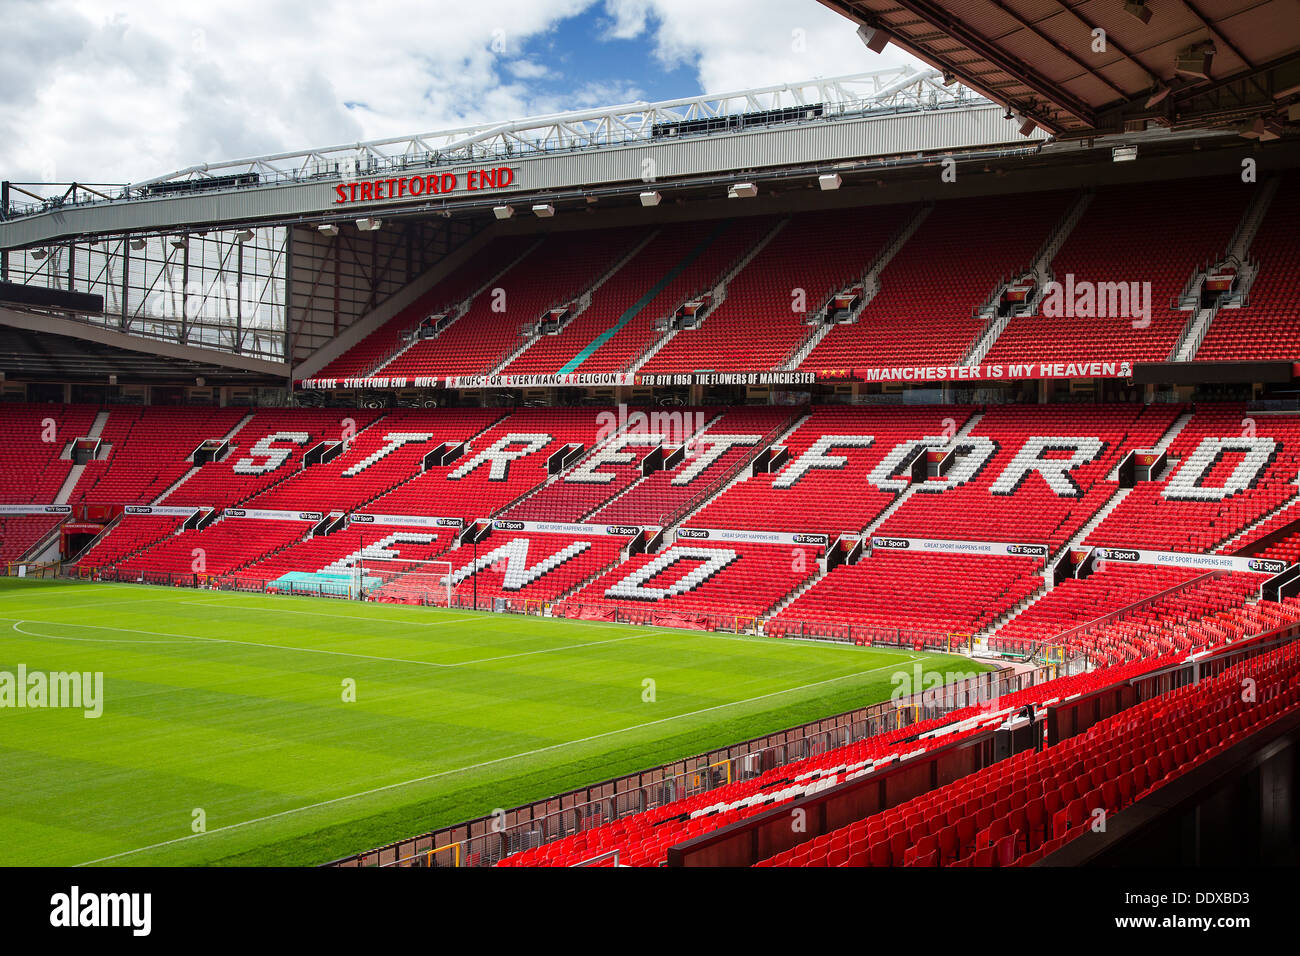 Stretford End Stand at Manchester United's Football Stadium, Old Trafford - Stock Image